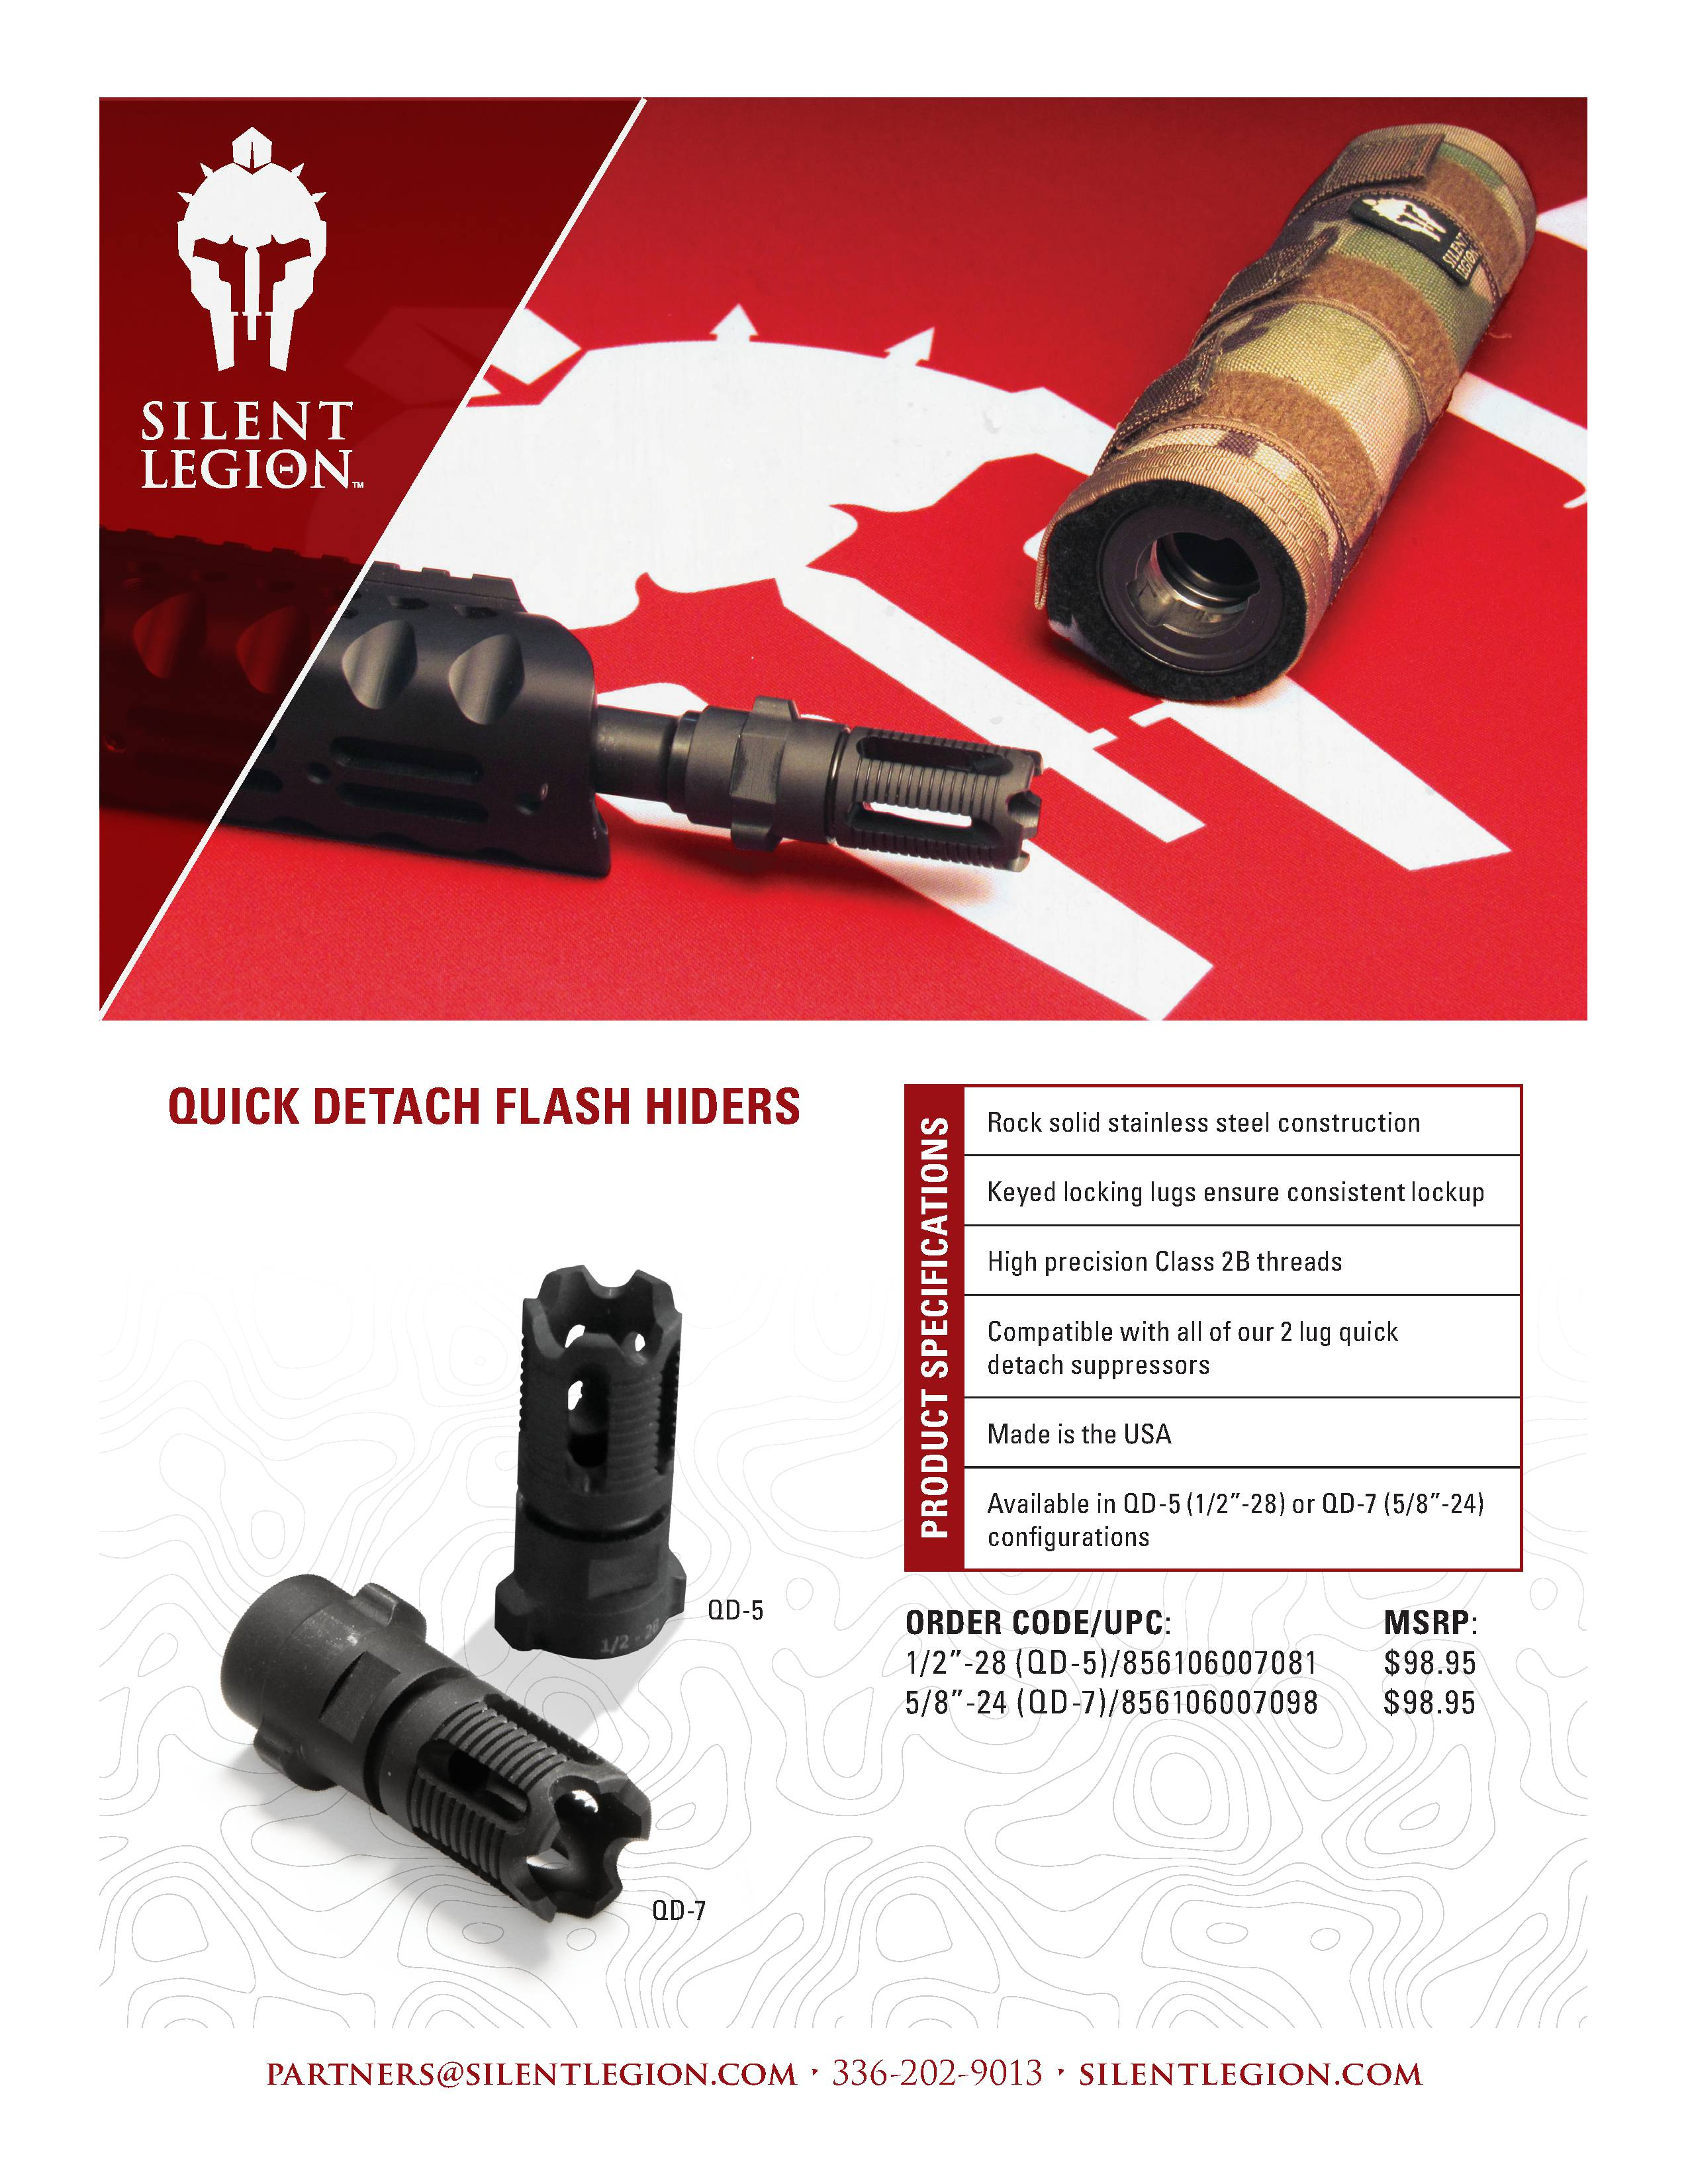 QUICK DETACH FLASH HIDERS